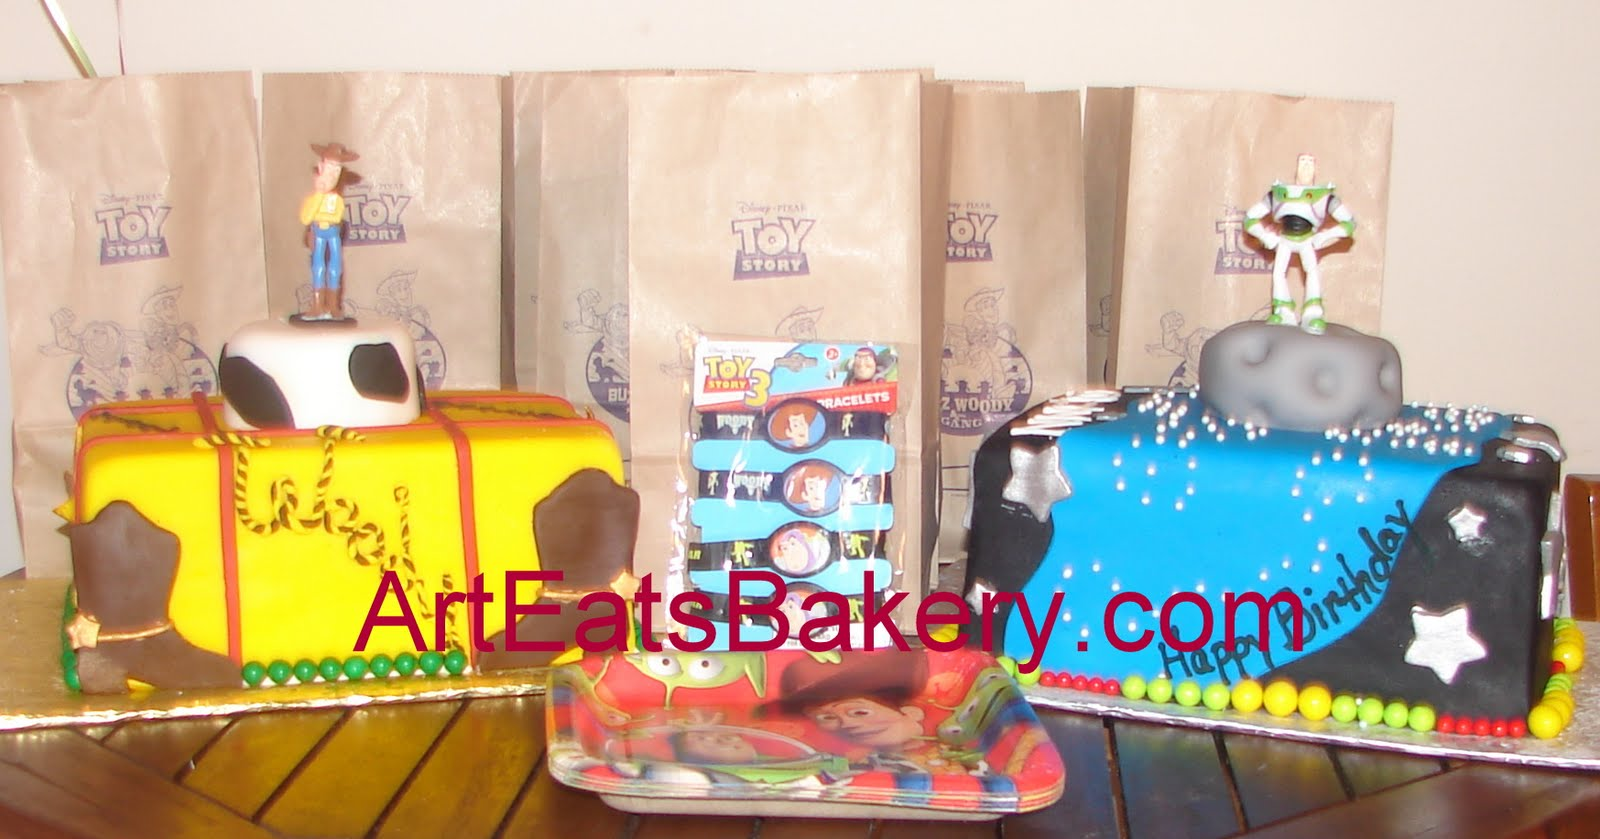 Art eats bakery custom fondant wedding and birthday cake for Bakery story decoration ideas